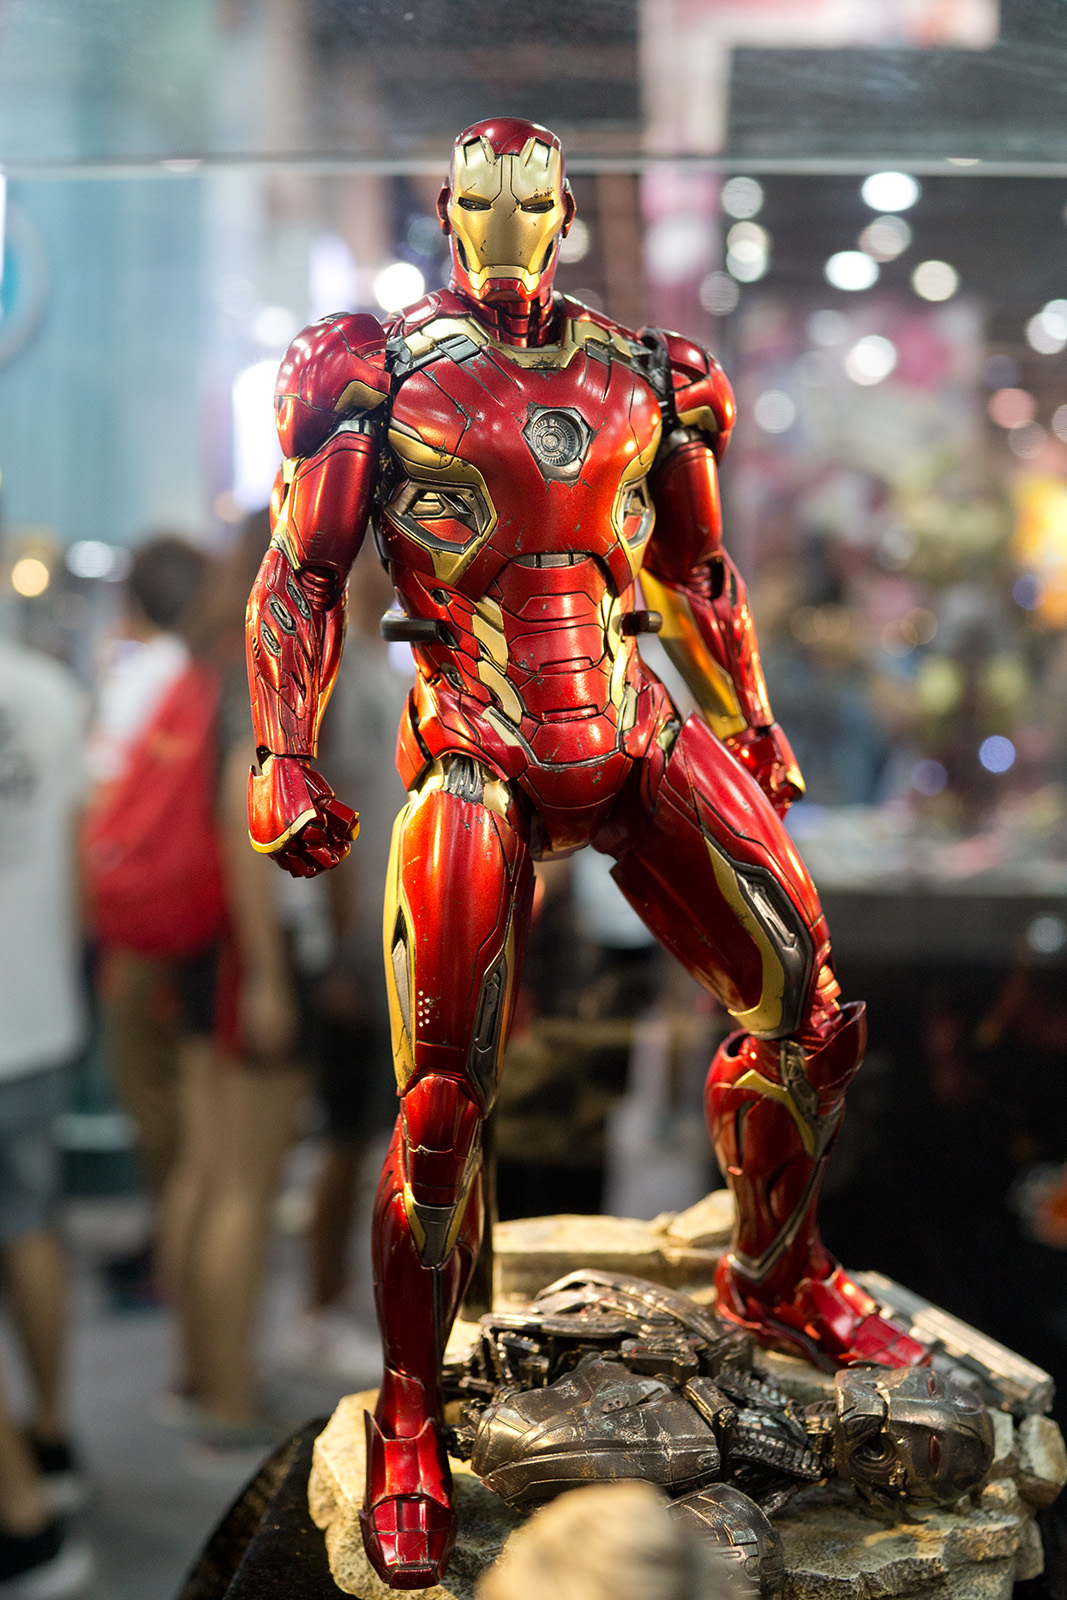 1 6 Hot Toys Mms Avengers Aou Iron Man Mark 45 Page 406 Some More Shots Of The 6th Scale Taken At Agchk Yesterday